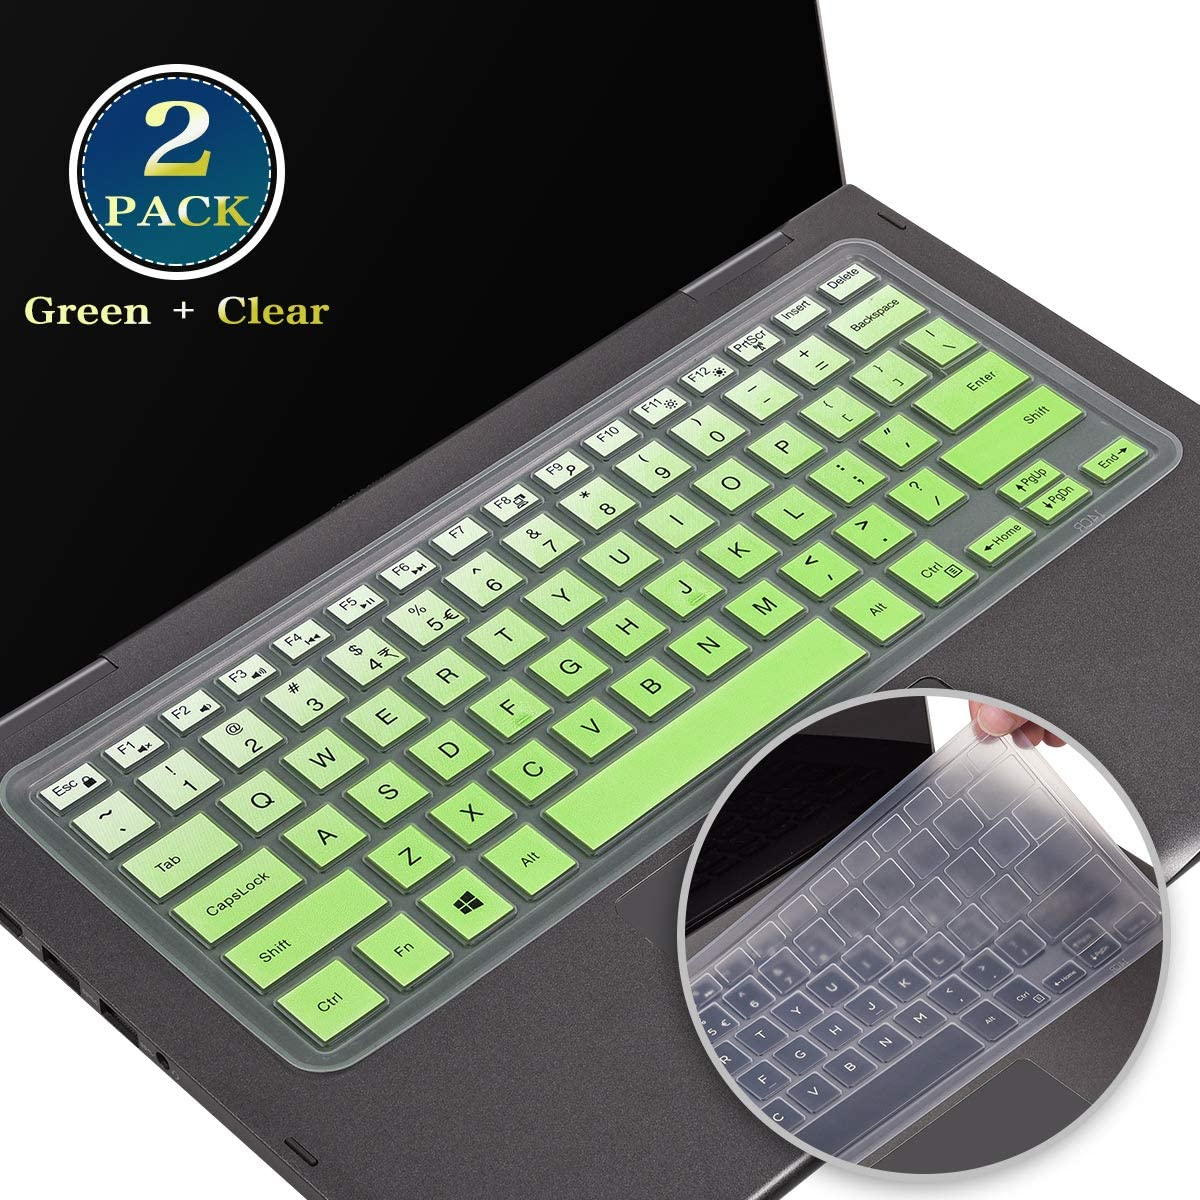 2 Pack Keyboard Cover Skin for Dell Inspiron 13 5000 i5368 i5378 i5379/Inspiron 13 7000 7368 7378 7380 7386, Dell Inspiron 15 5000 5568 5578 5579/ Inspiron 15 7000 7570 7573 7586(Ombre Green+Clear)